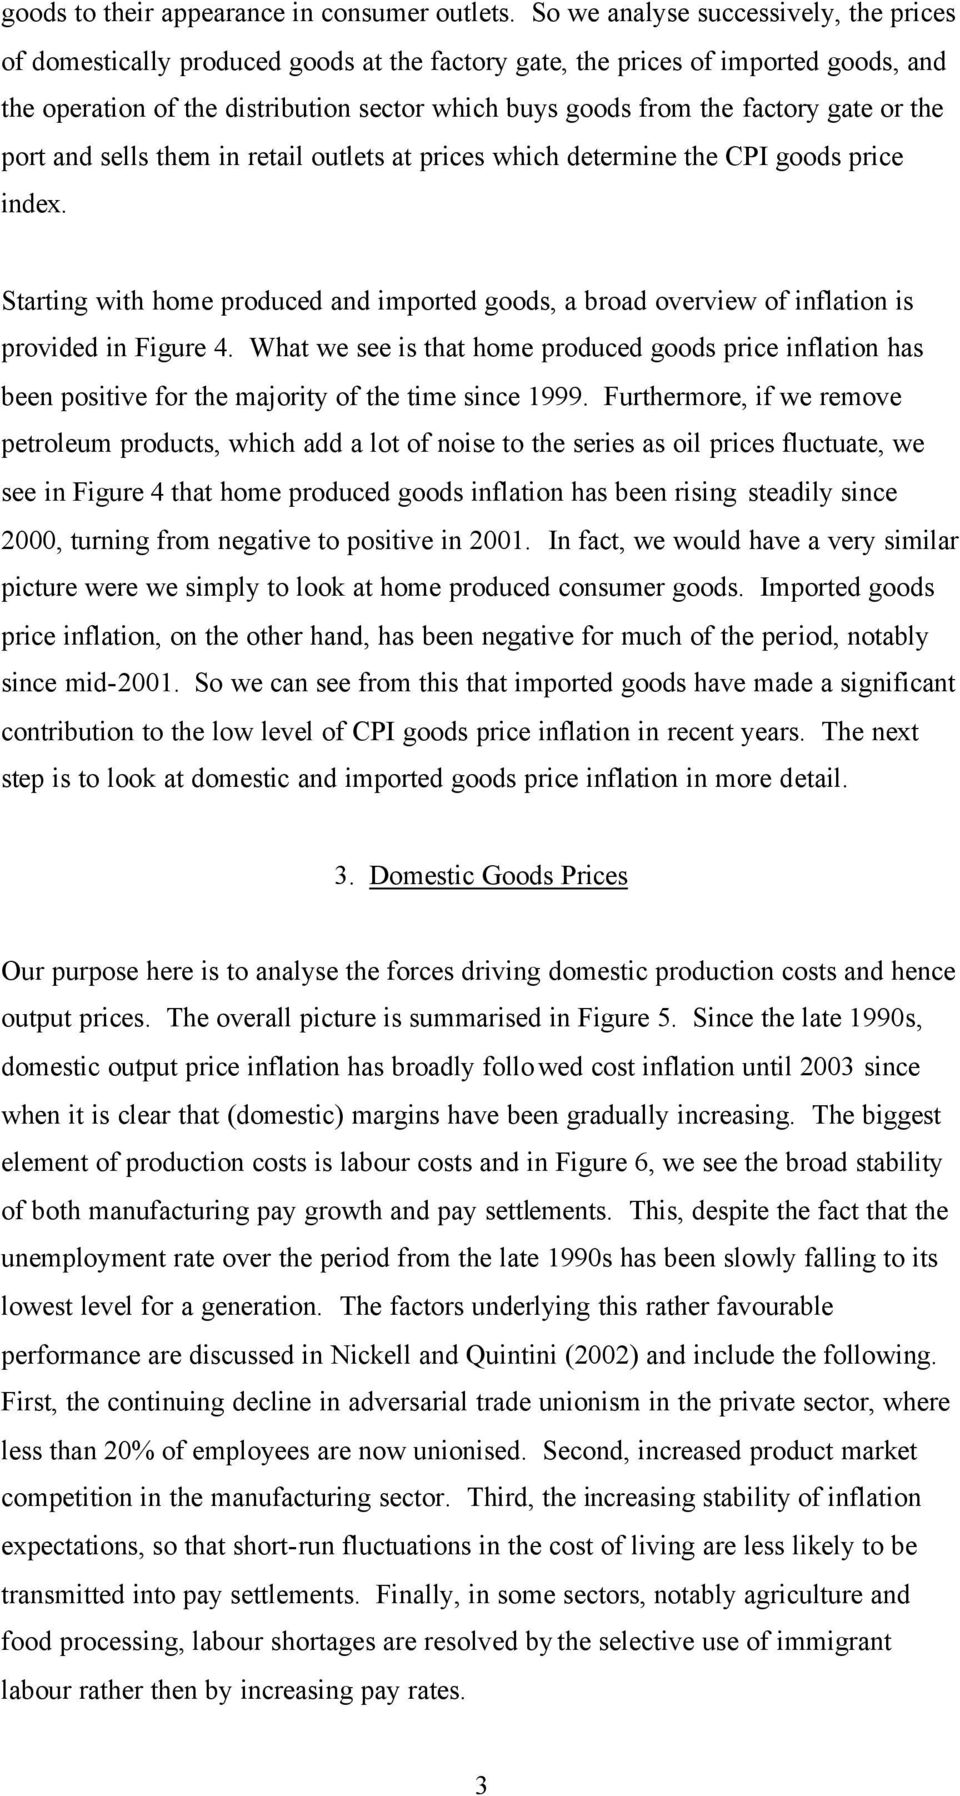 gate or the port and sells them in retail outlets at prices which determine the CPI goods price index.